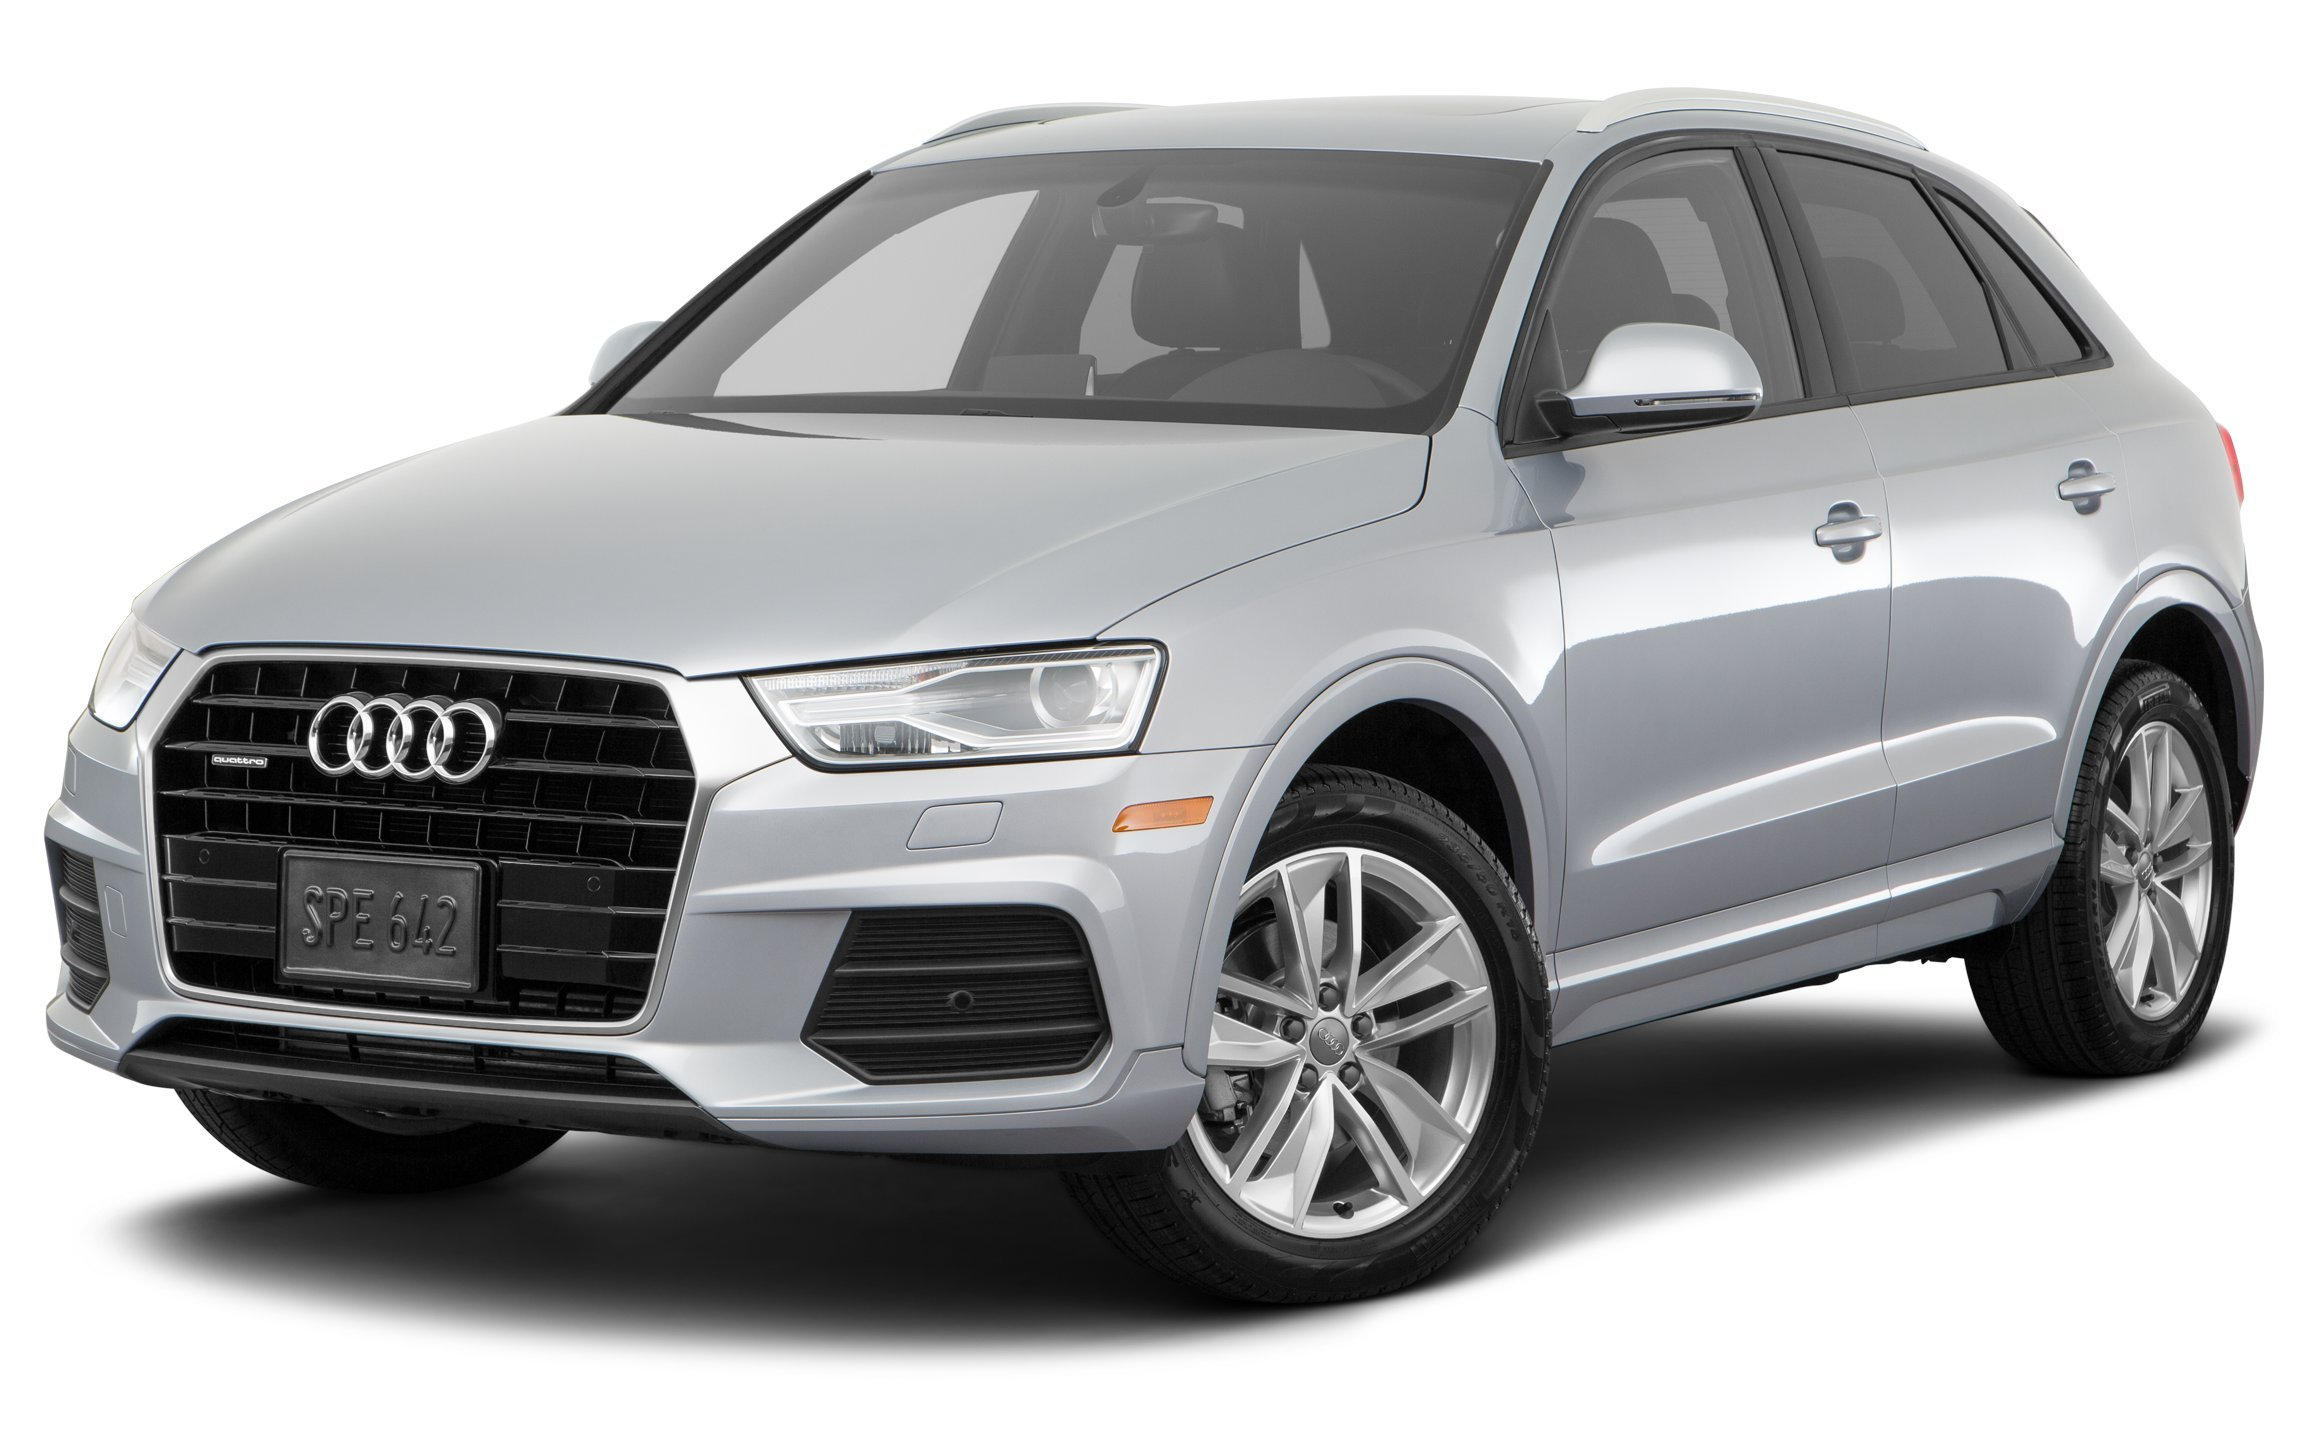 Amazon 2017 Audi Q3 Reviews and Specs Vehicles